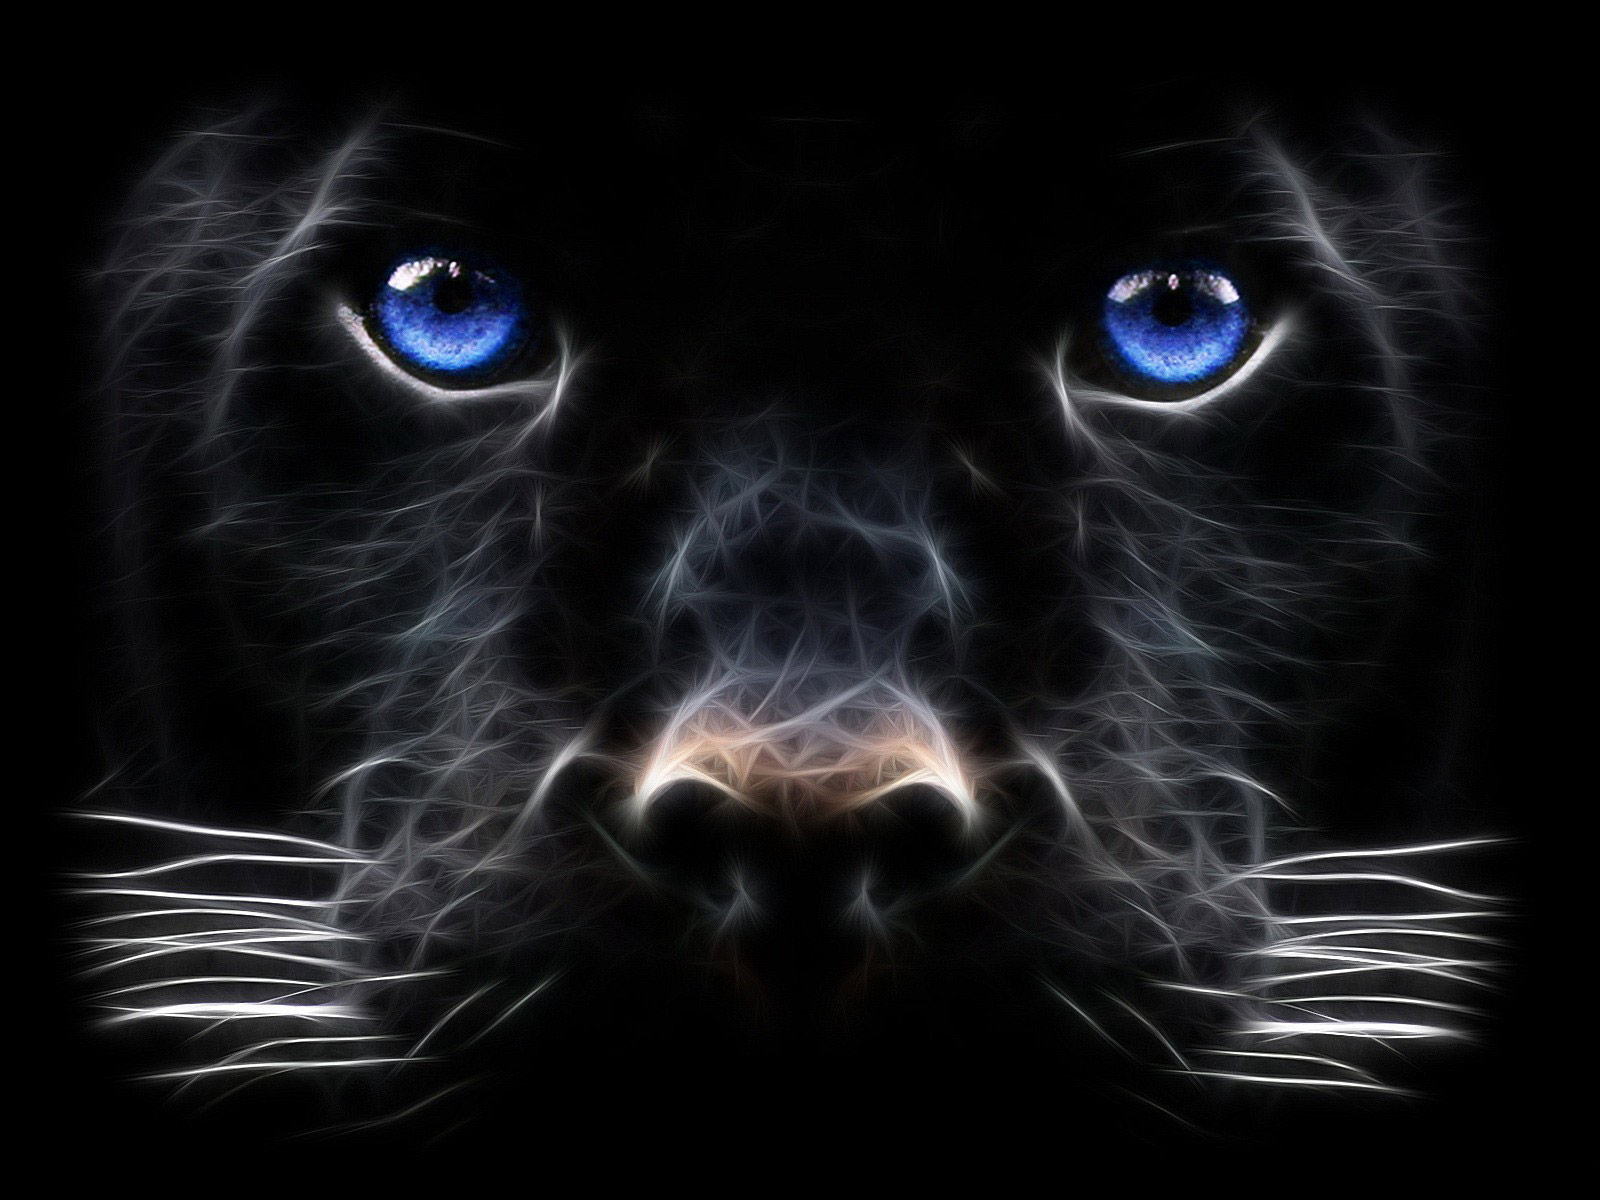 46 Black Panther Blue Eyes Wallpaper On Wallpapersafari